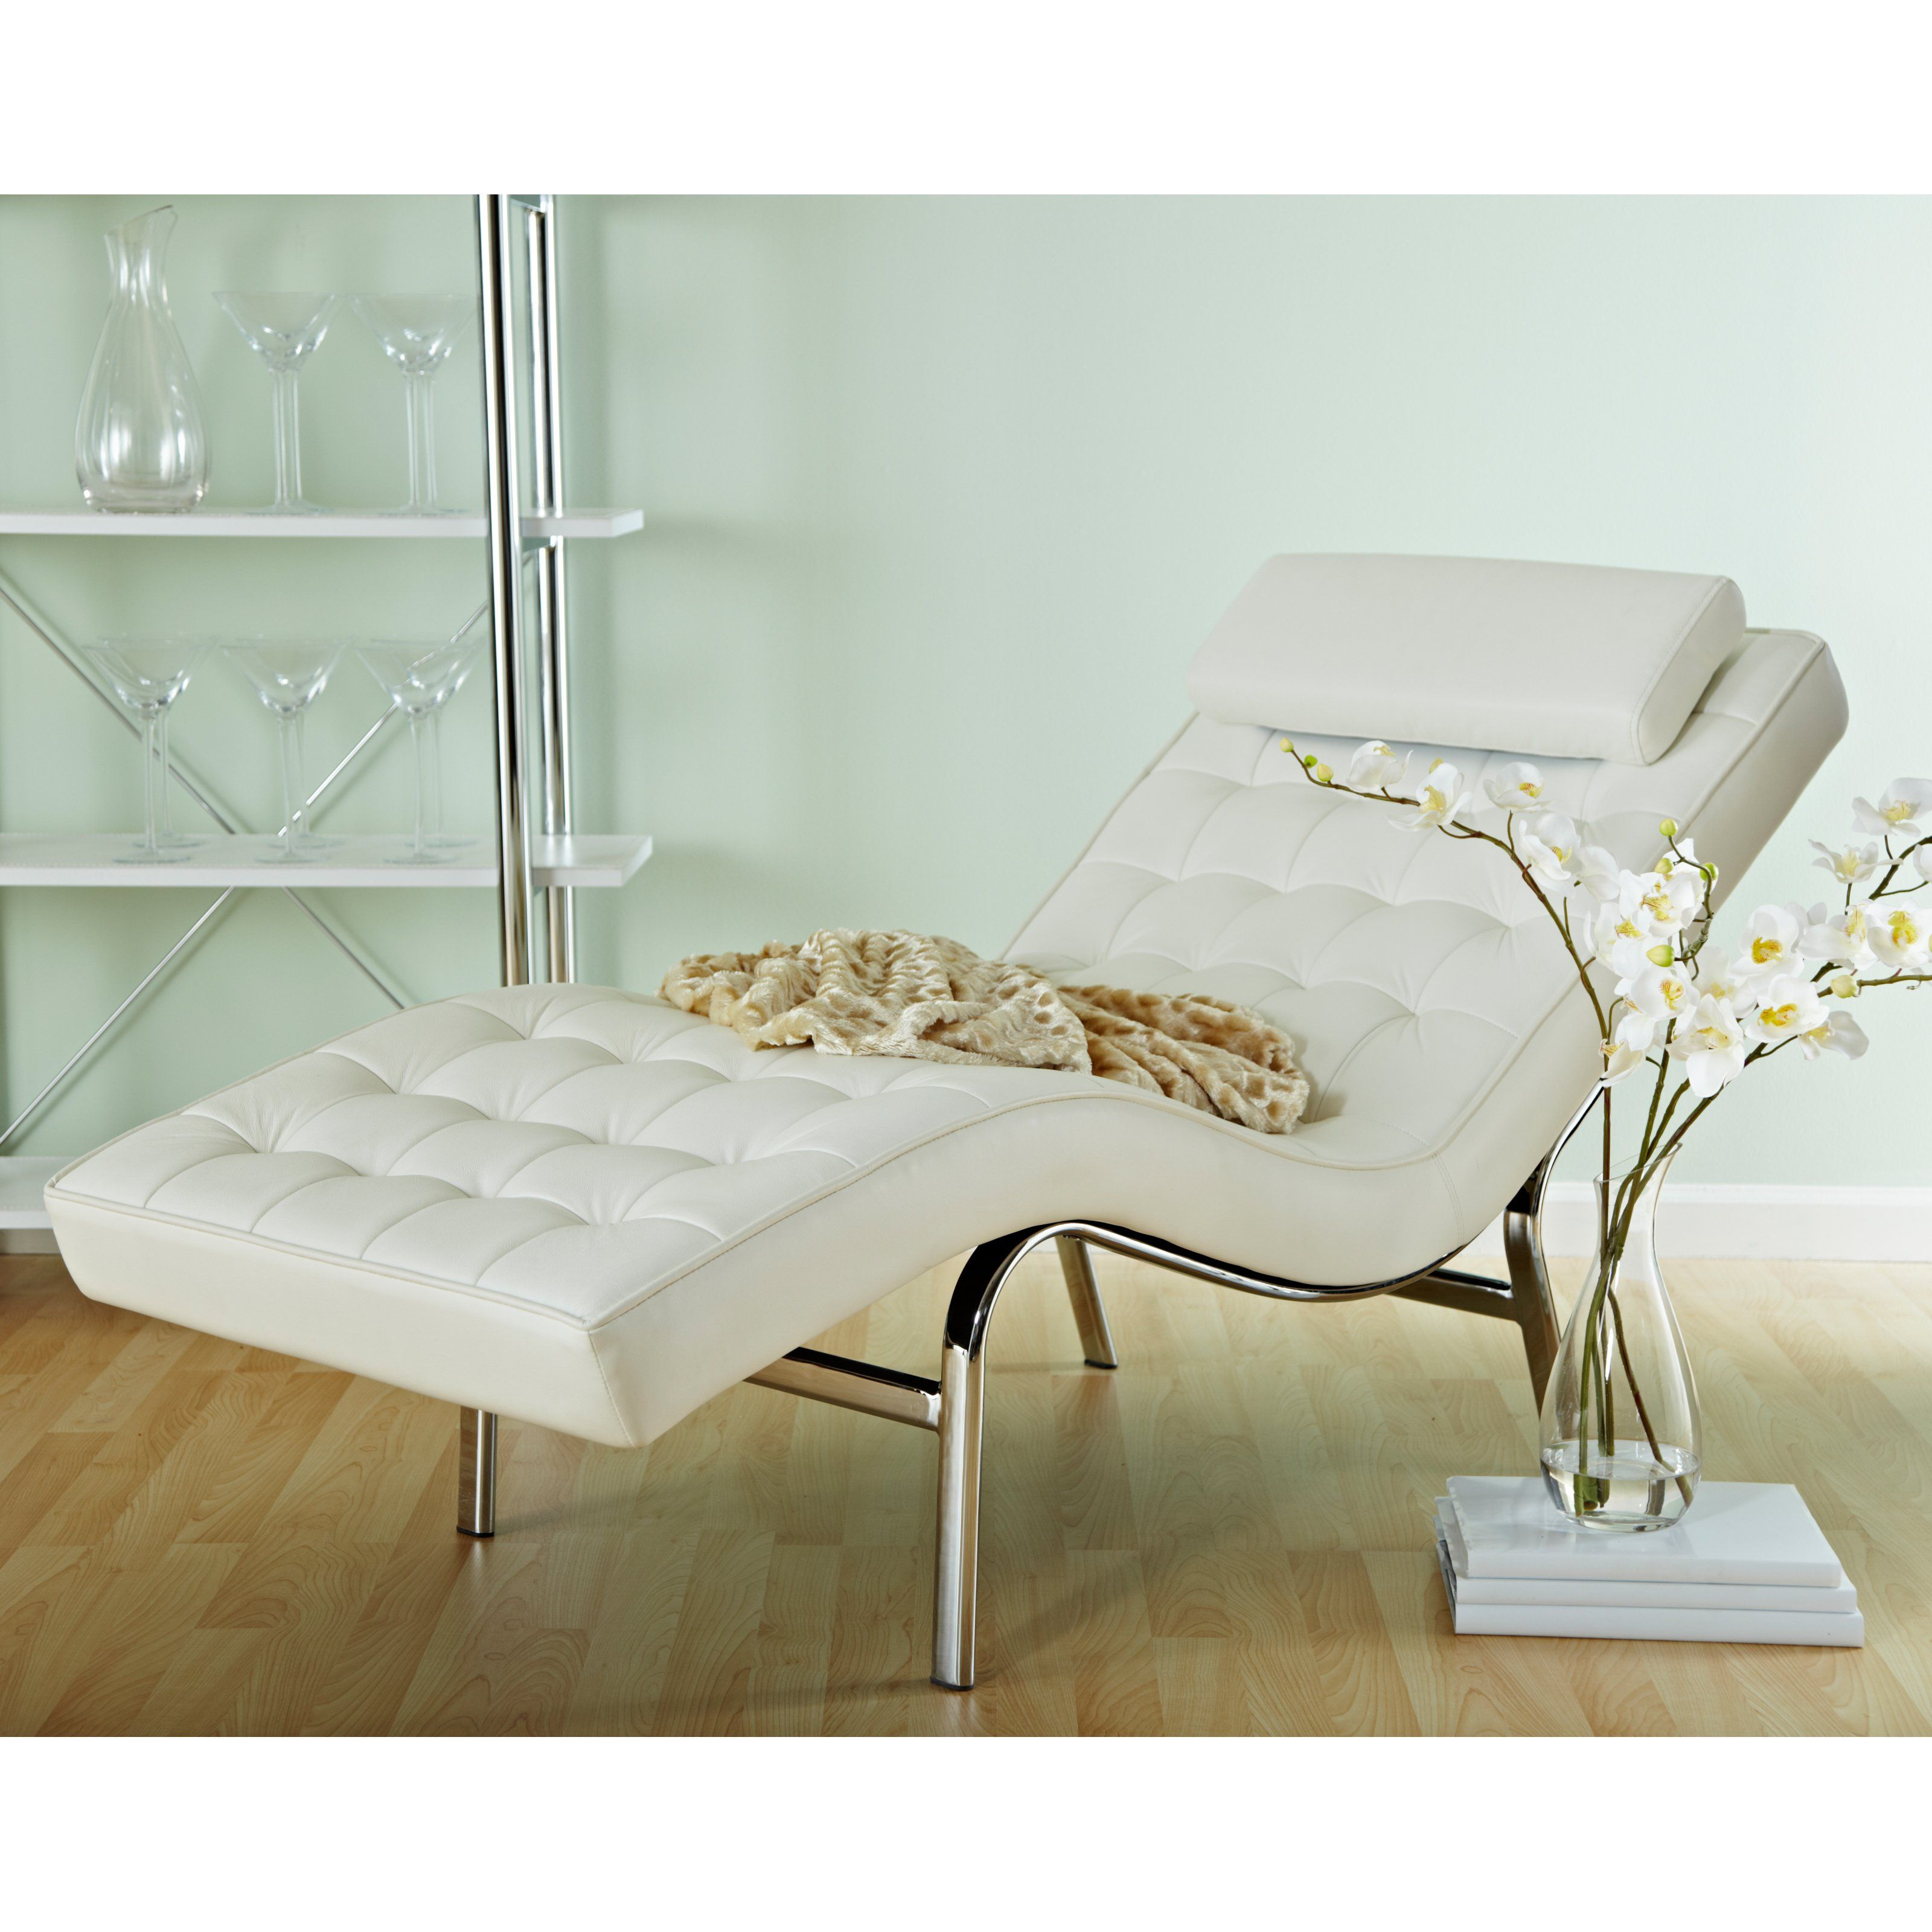 Euro Style Valencia Leather Chaise Lounge From Hayneedle